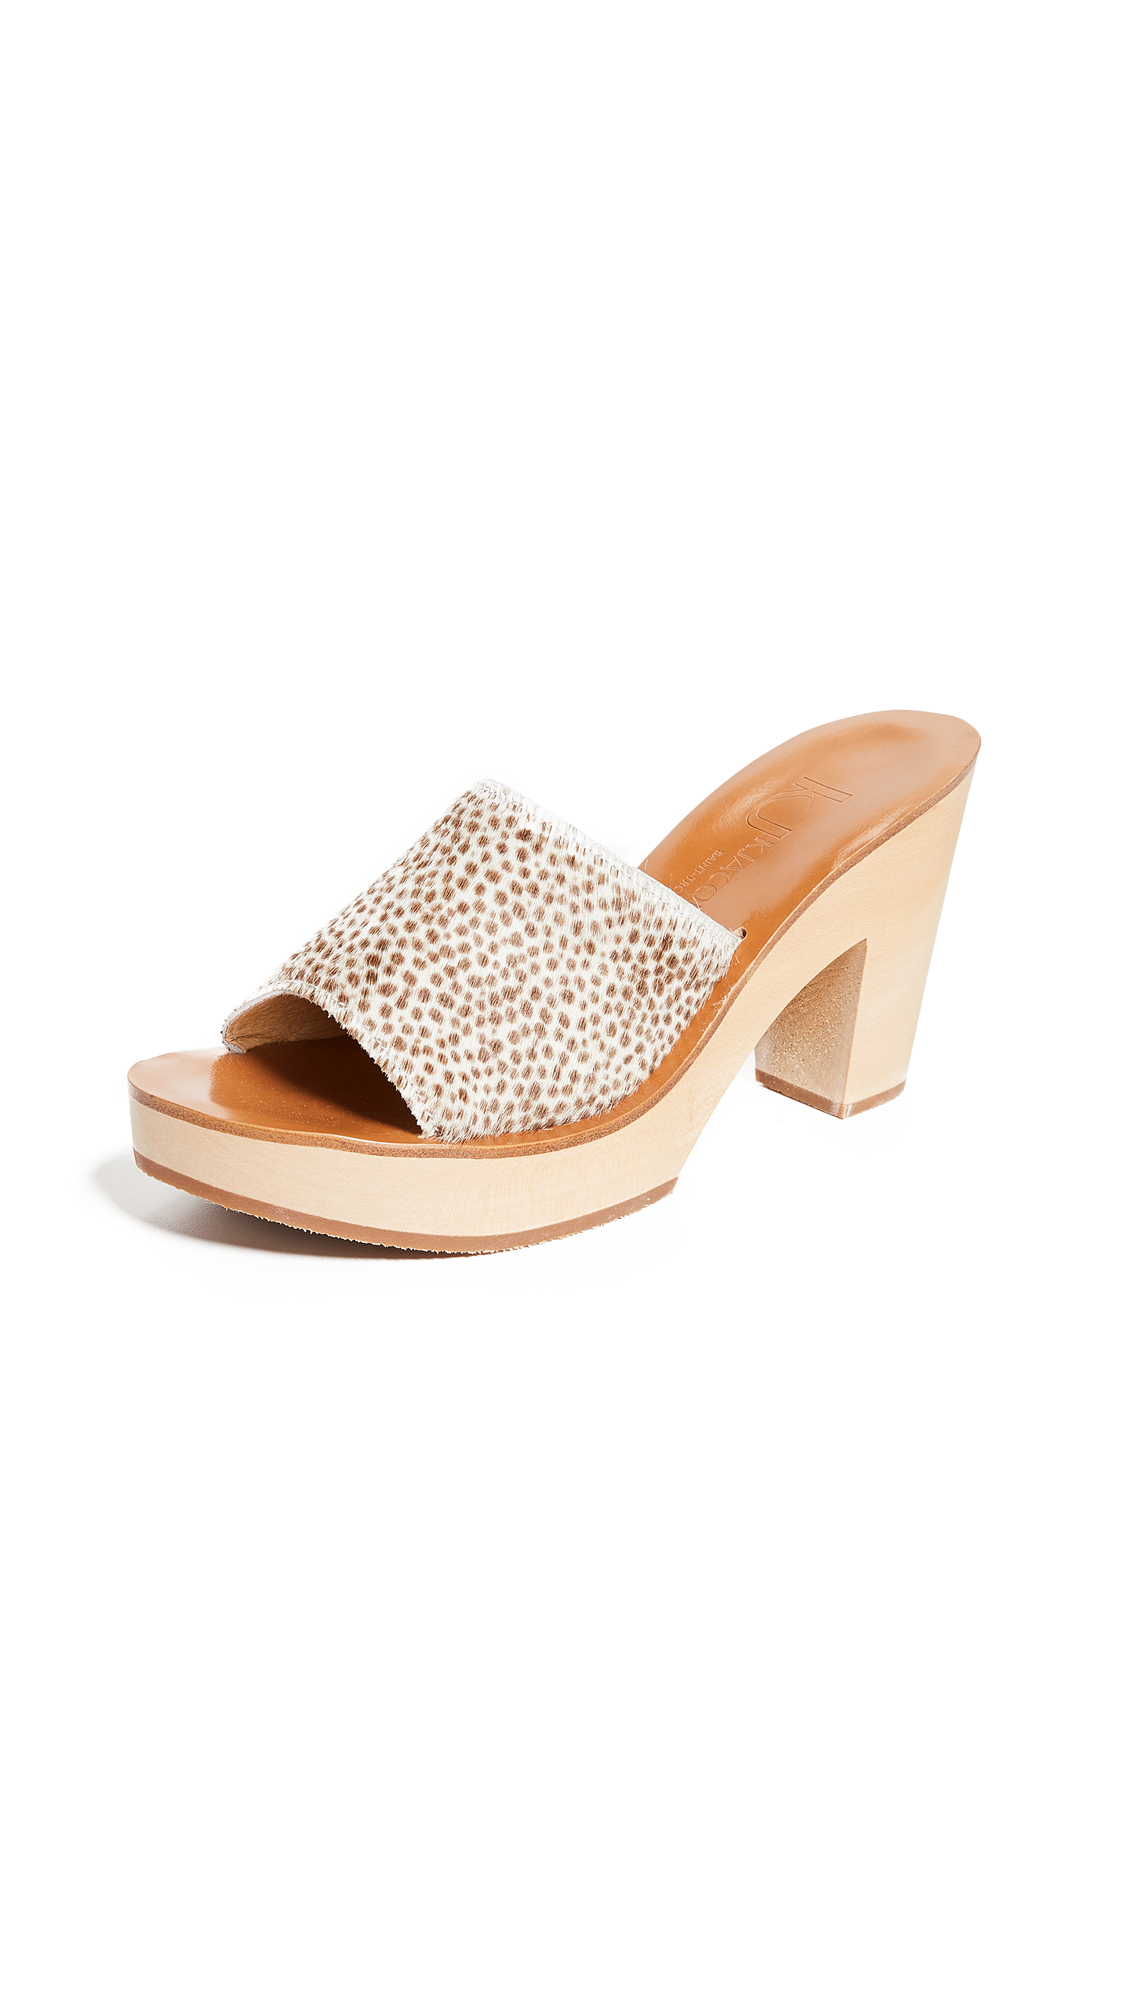 K. Jacques Fiscus Heeled Mules - Horsy Merau